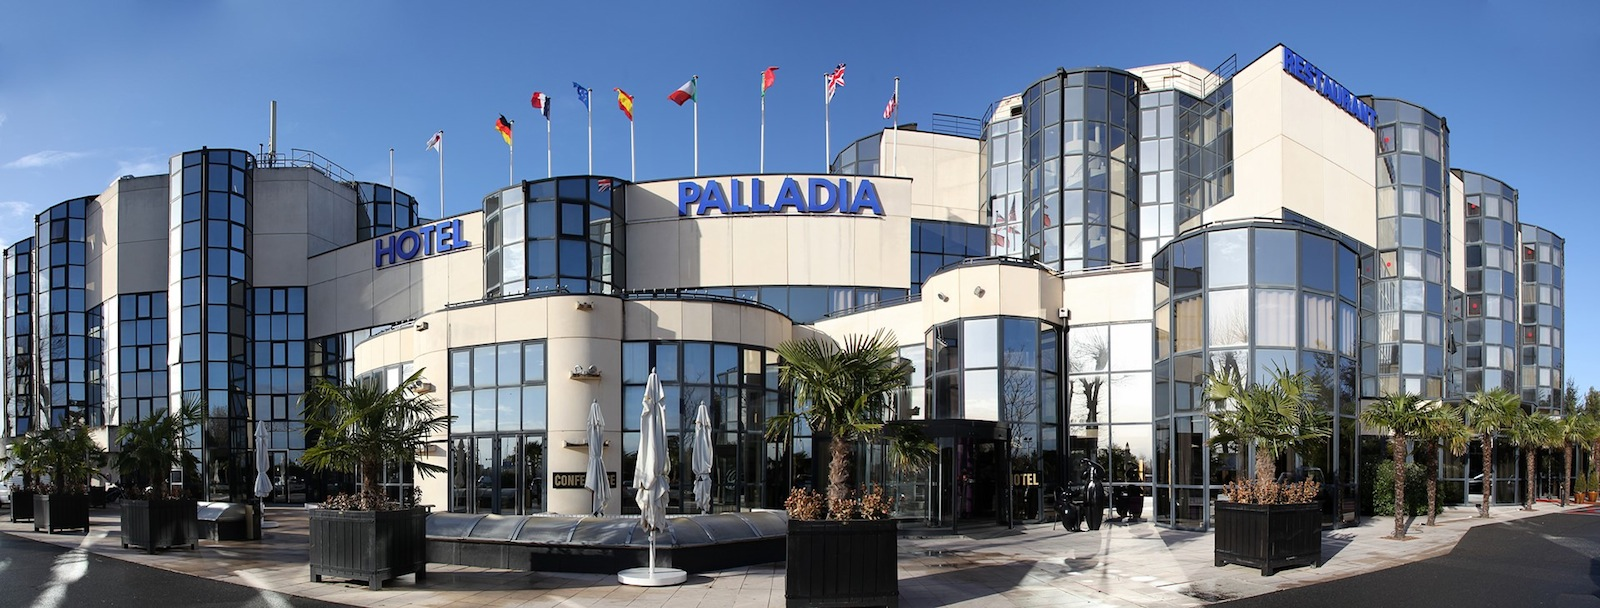 Palladia toulouse h tel restaurant for Hotels toulouse